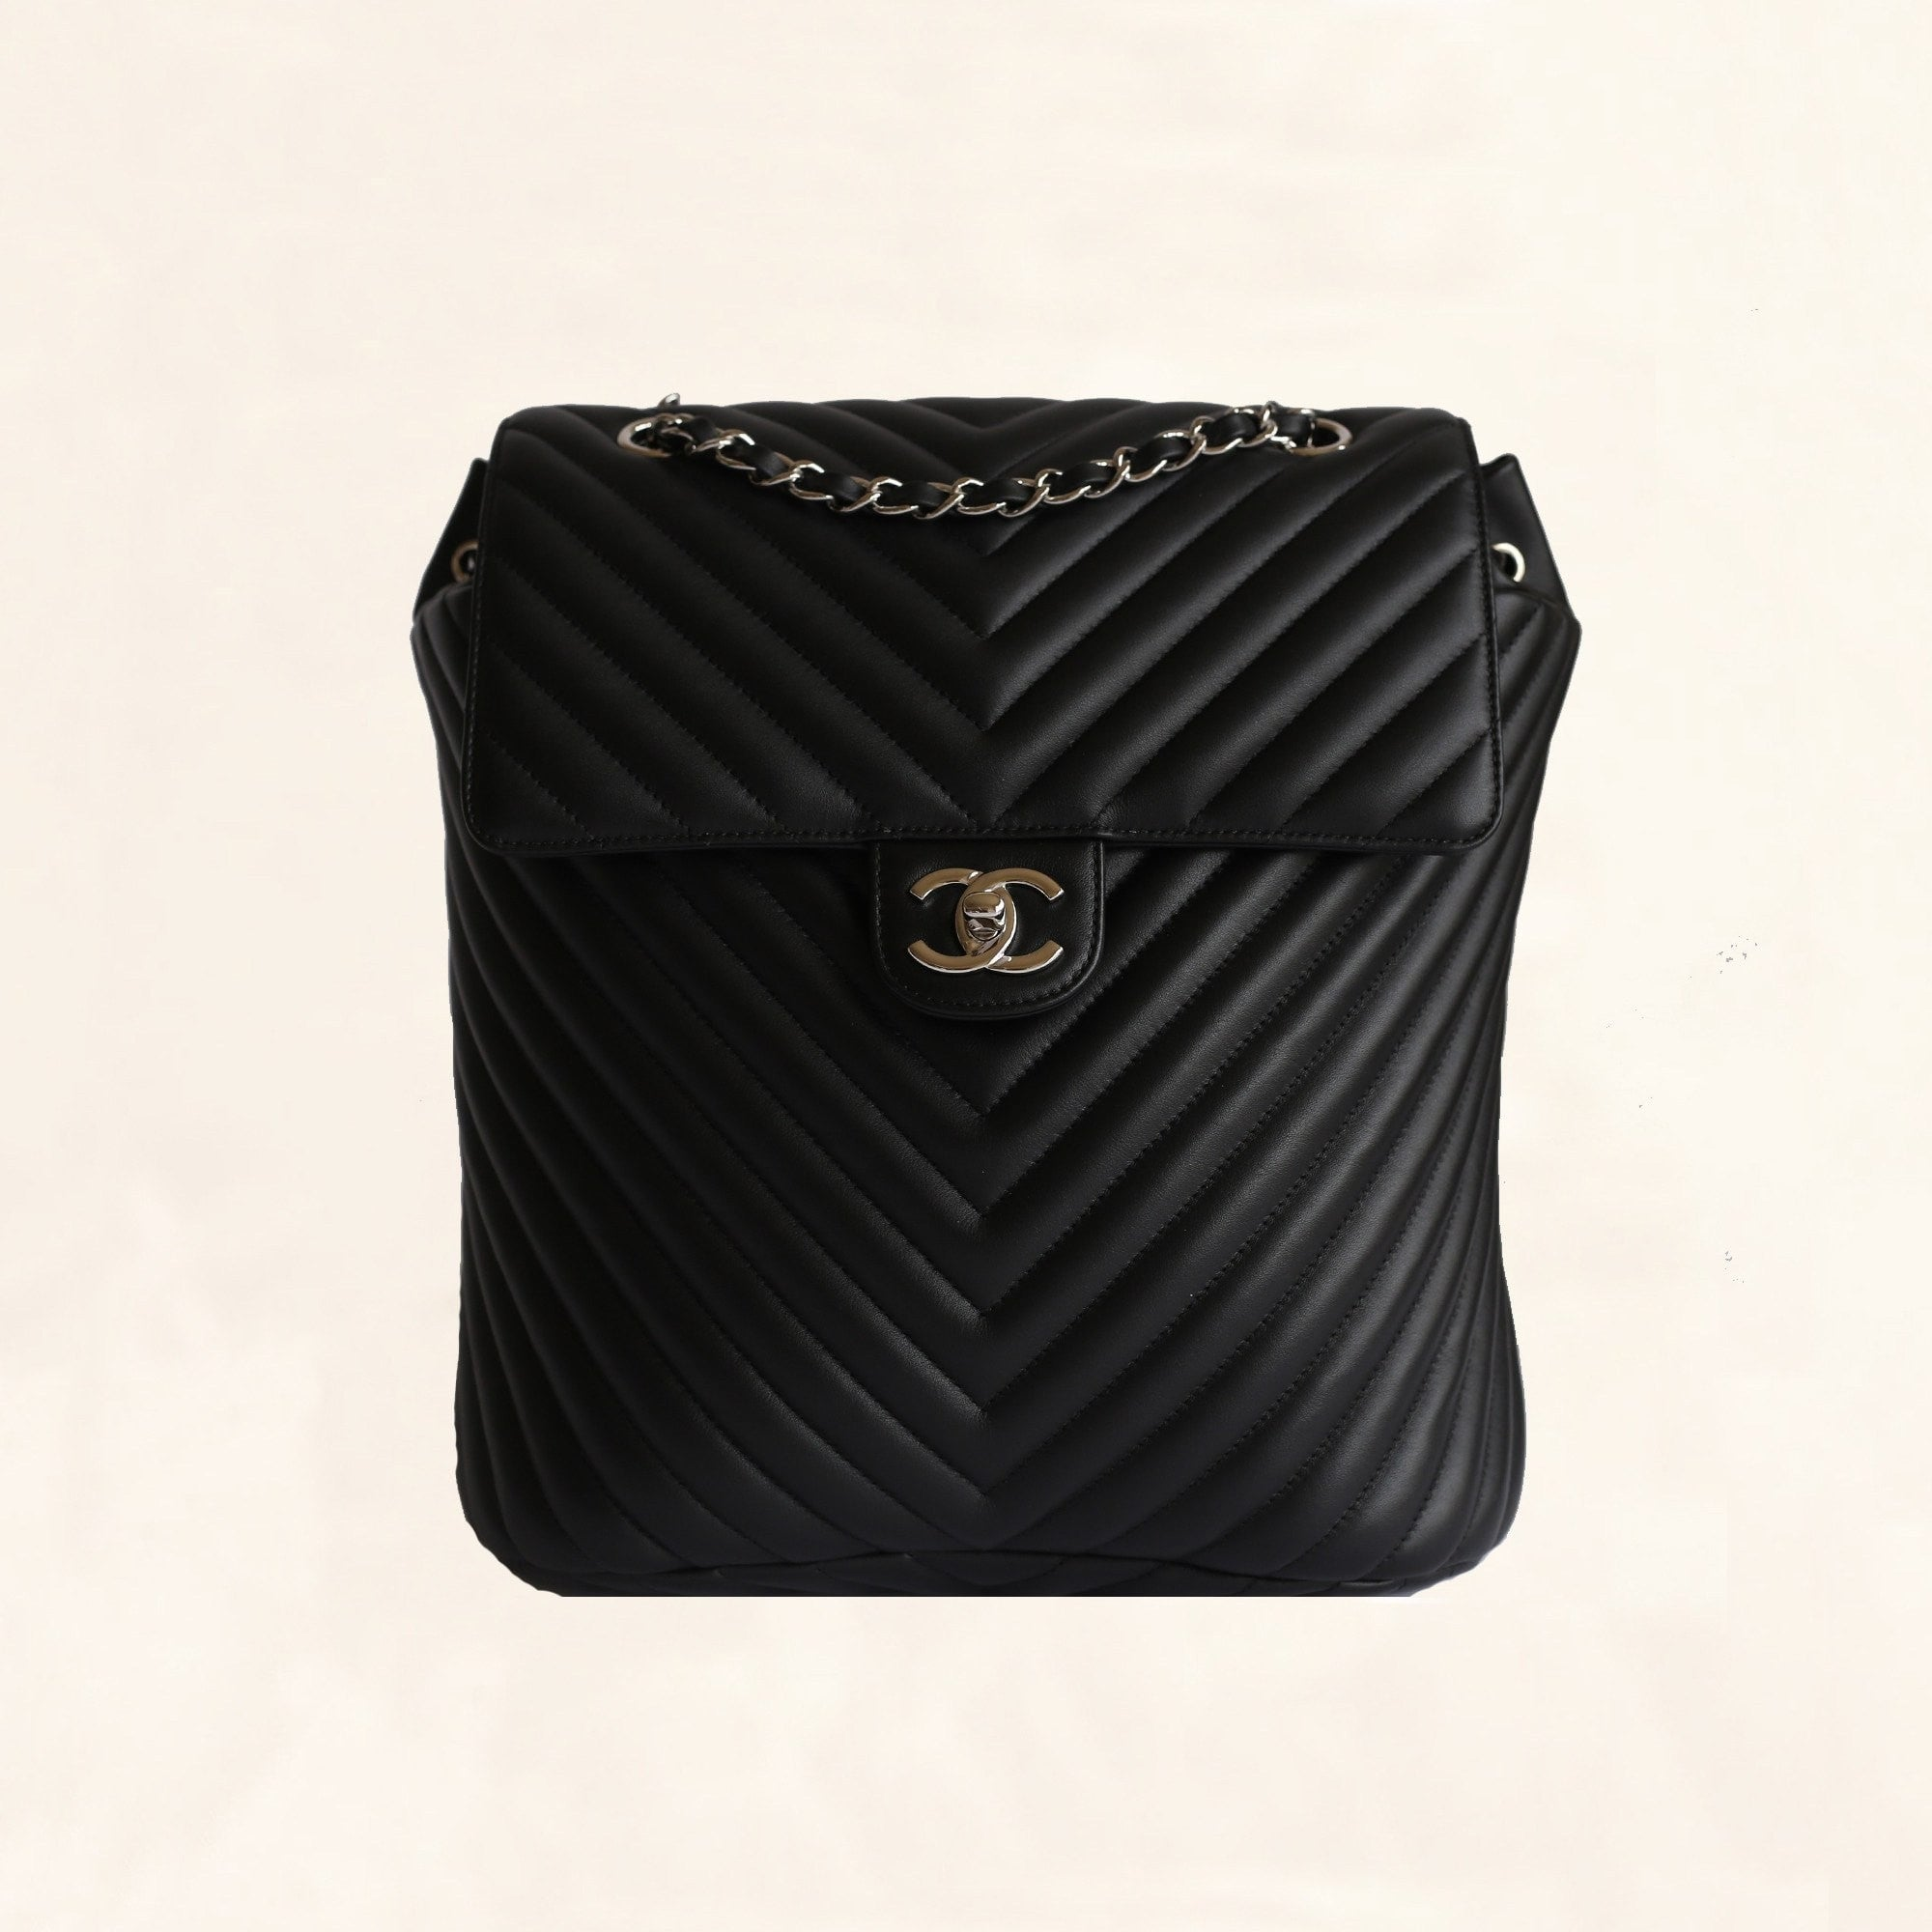 2be490400ee5 Chanel